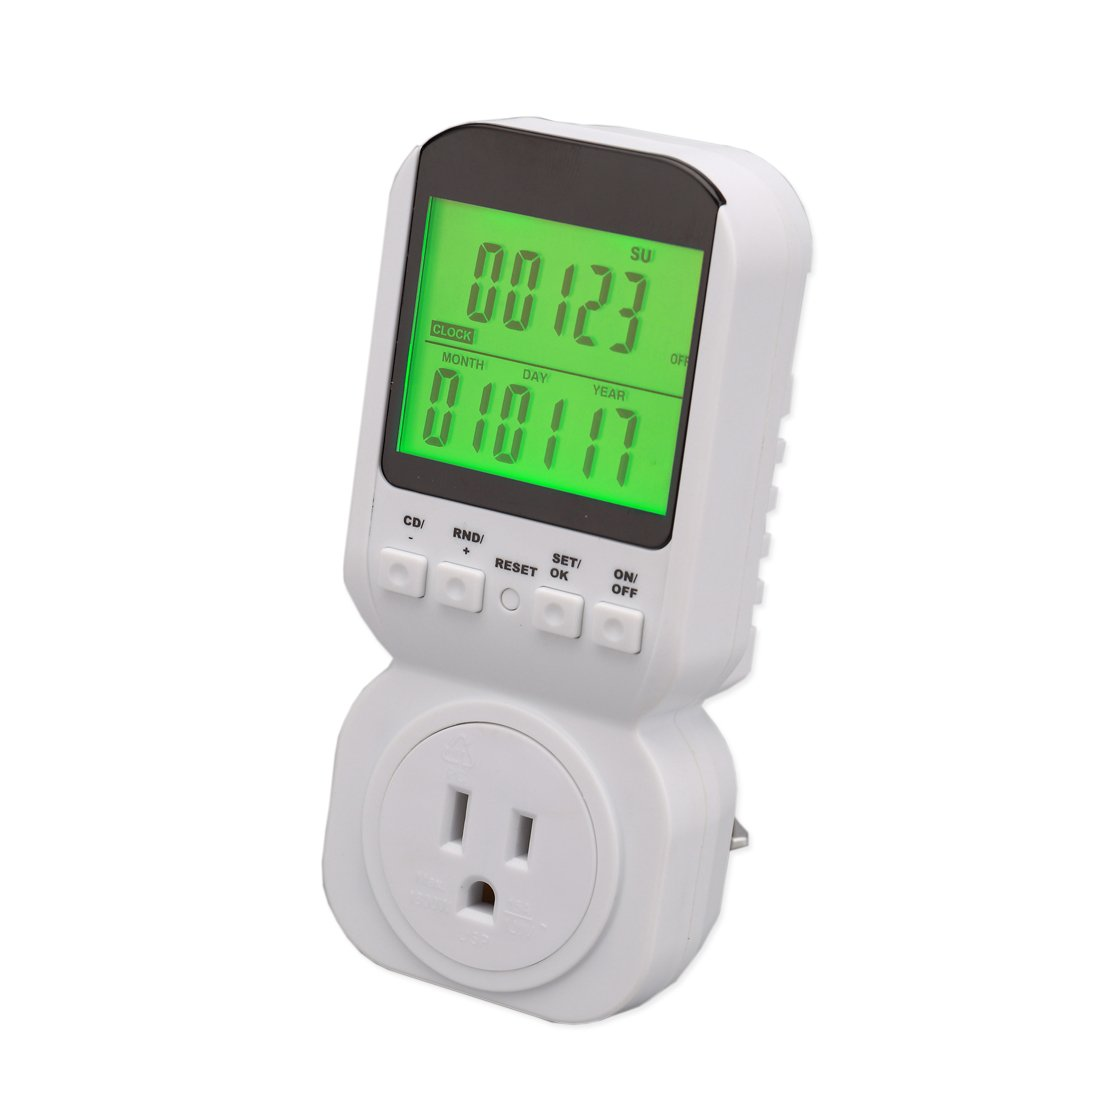 Timer Digital Clock LCD Display ON//OFF Control for Electrical Appliances Energy Saving Nashone Timer Outlet